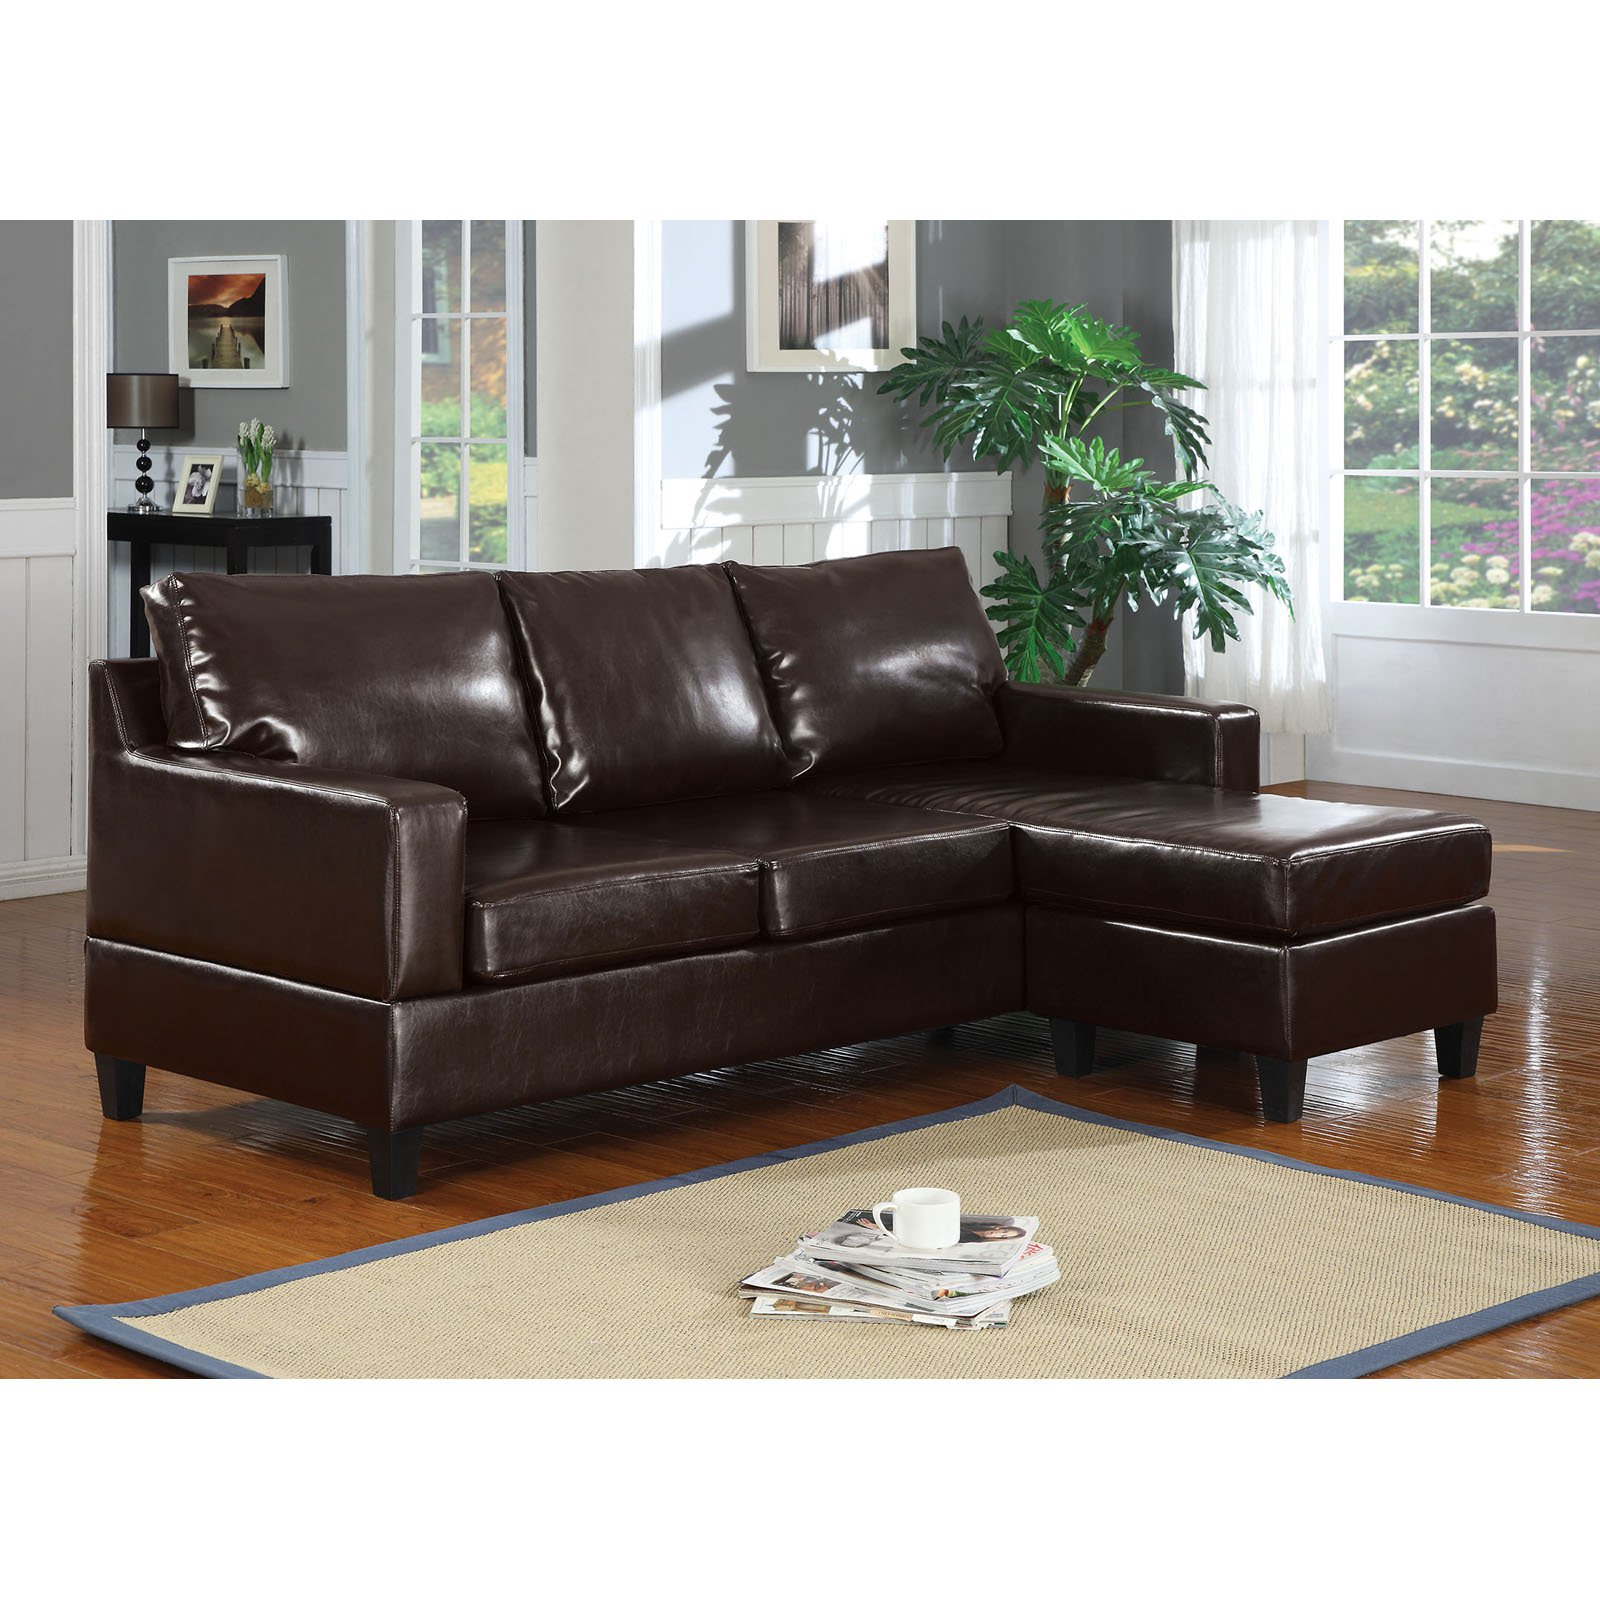 Acme Furniture Vogue Leather Sectional Sofa Walmart